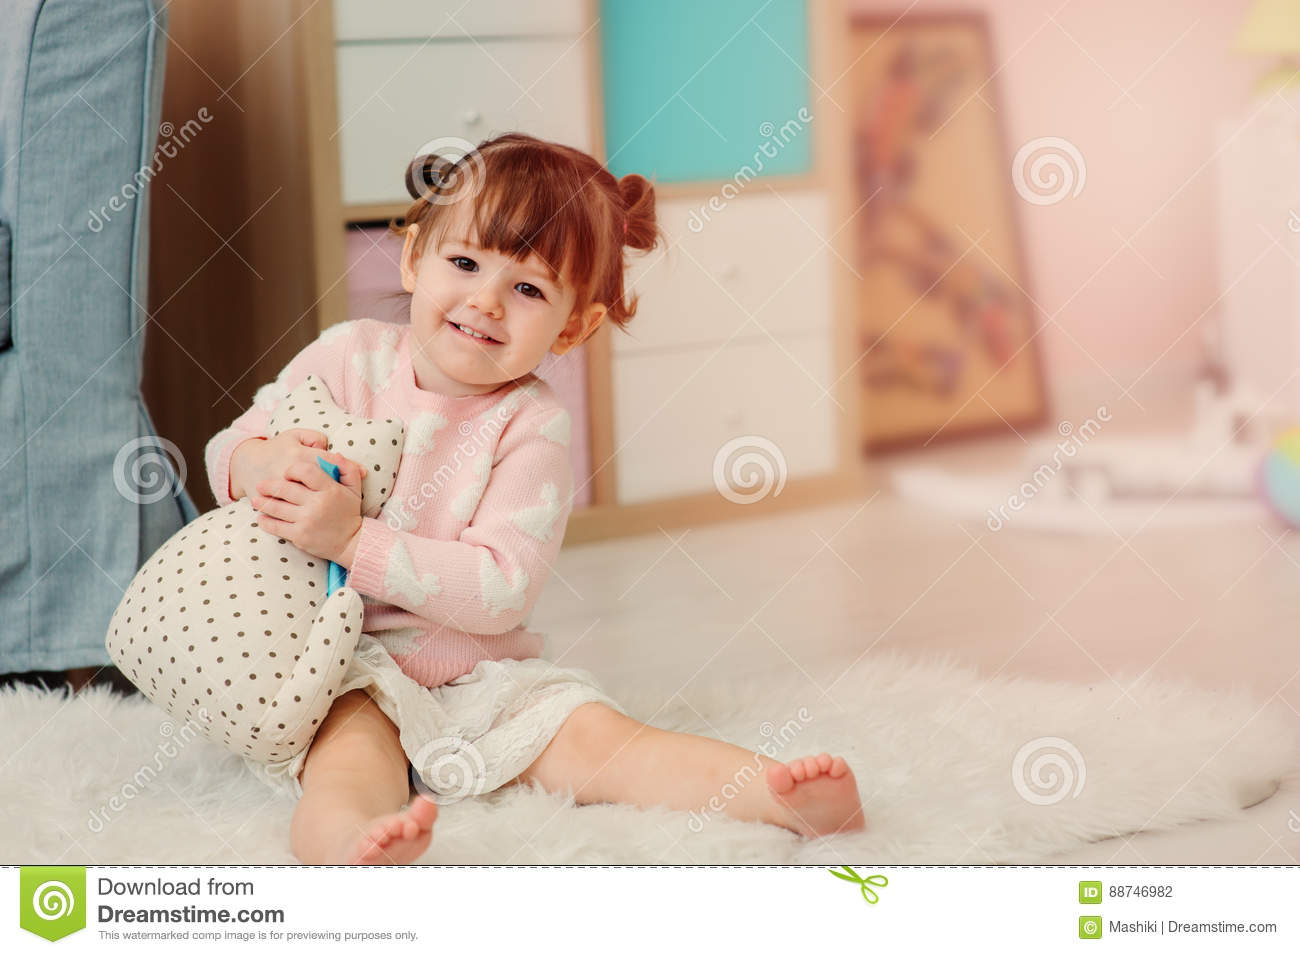 10caf6d5c6ee Cute Happy 2 Years Old Baby Girl Playing With Toys At Home Stock ...